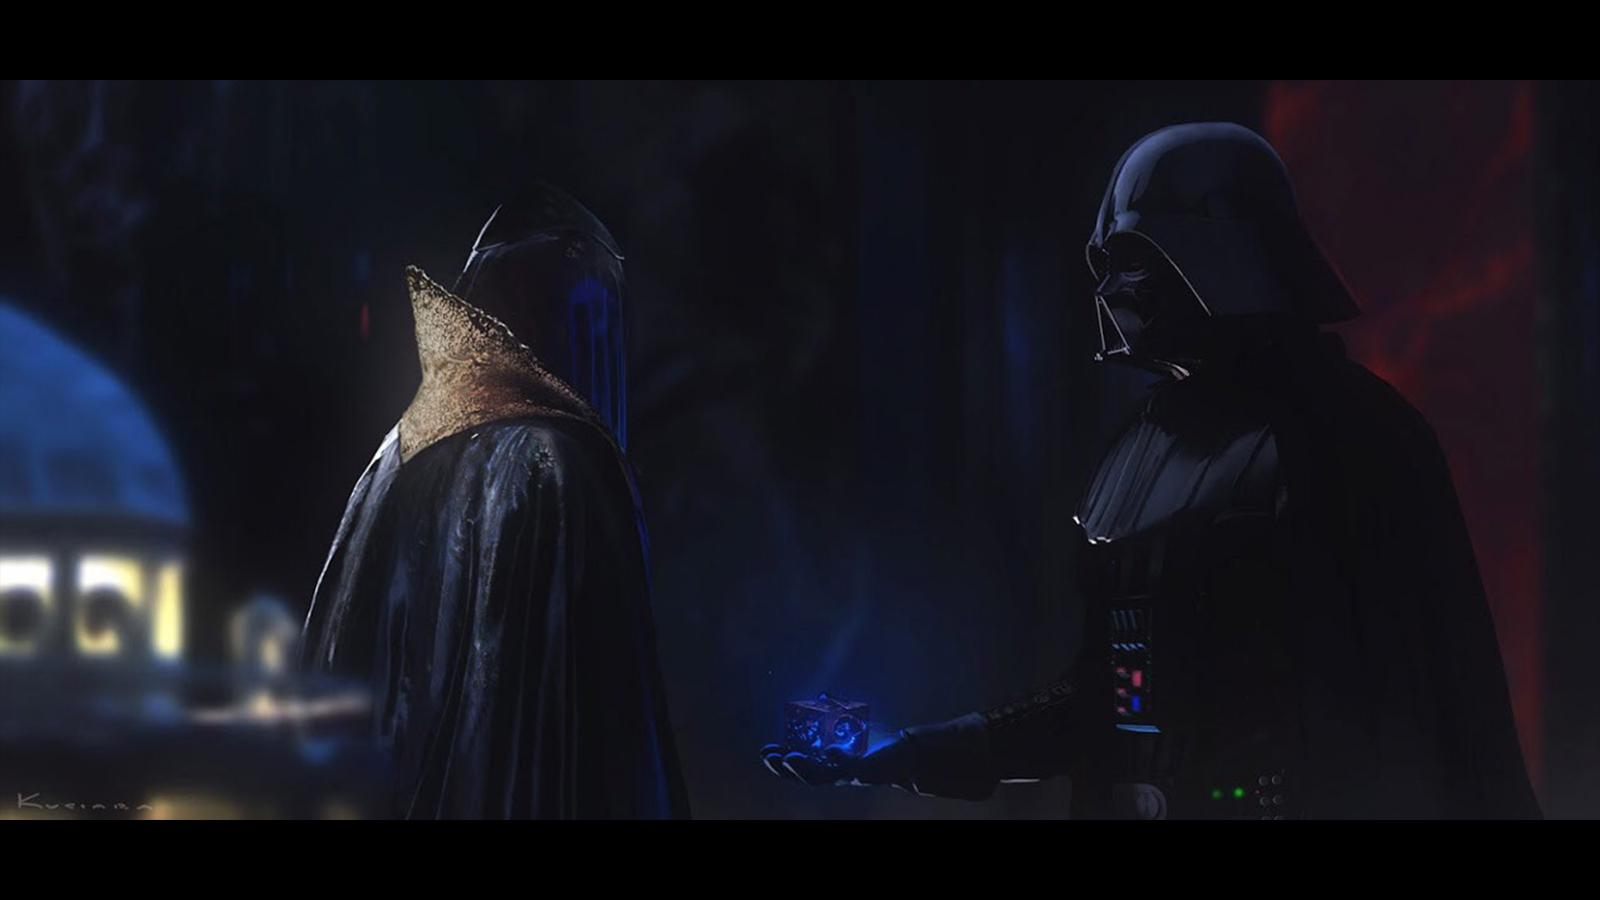 What We Can Expect From Star Wars: Vader Immortal Part 2